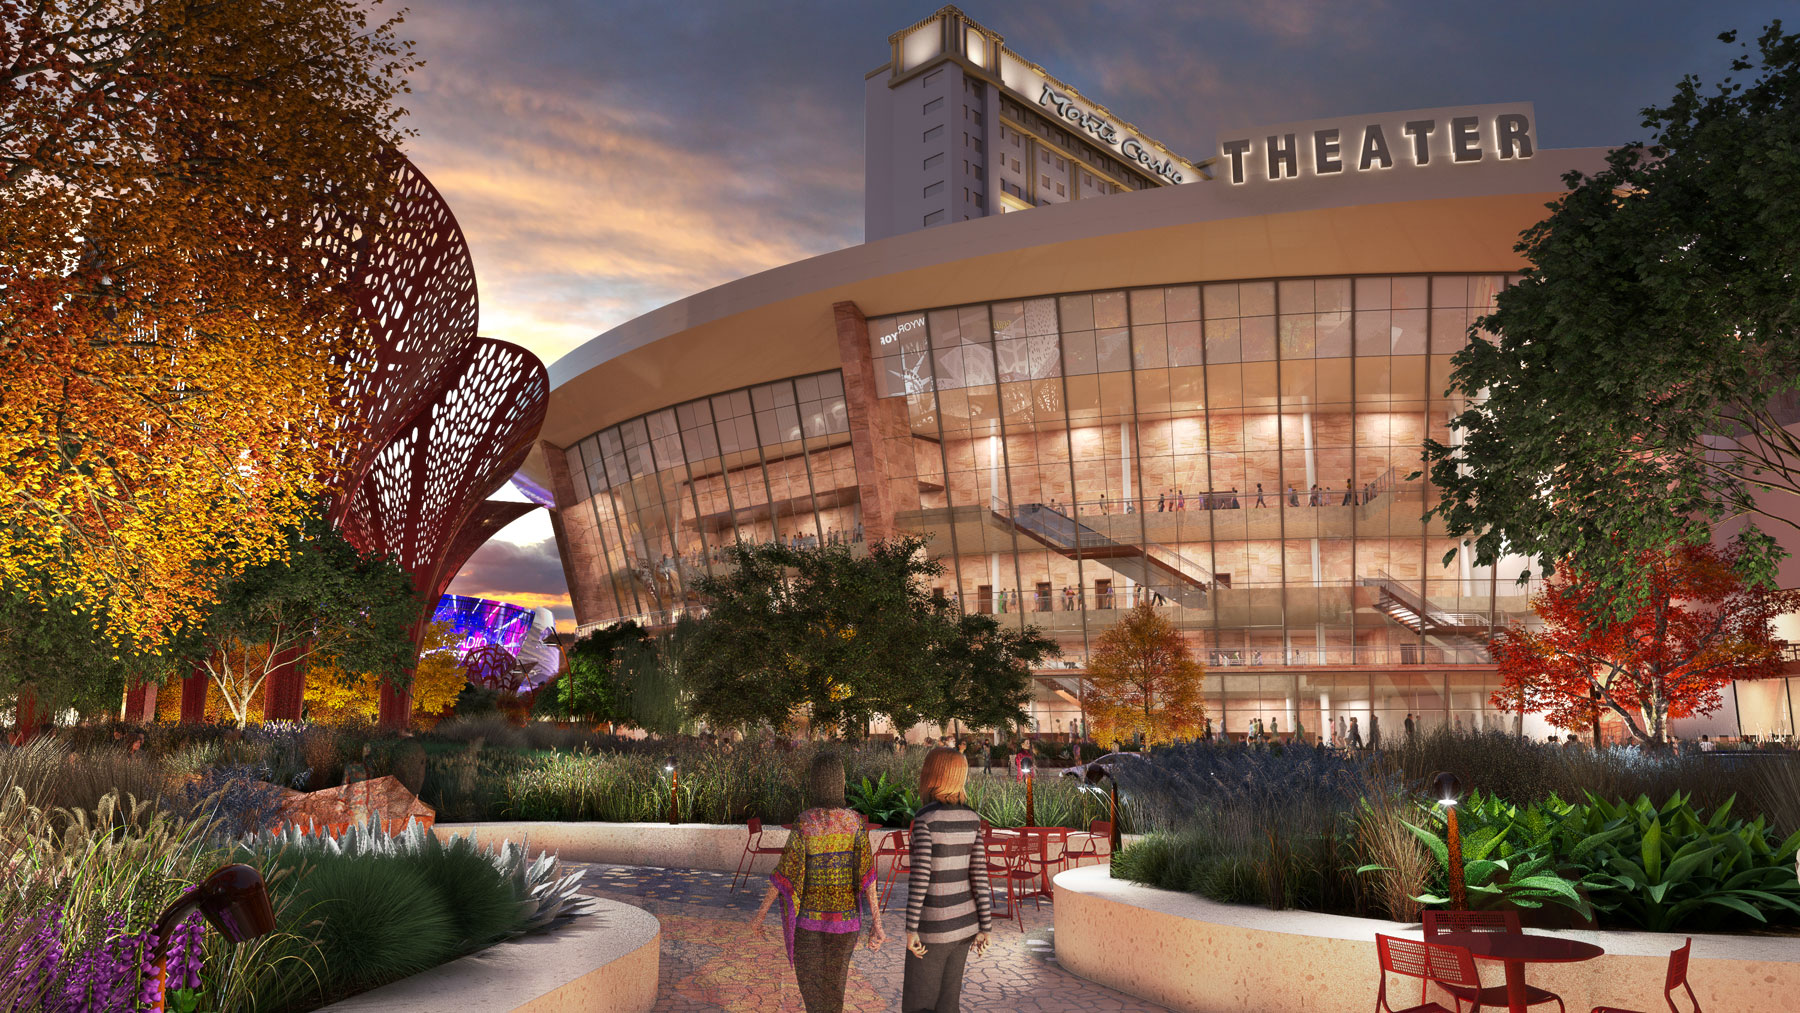 The Park will combine outdoor space with restaurants, bars and a new arena. Photo courtesy of MGM Resorts International.